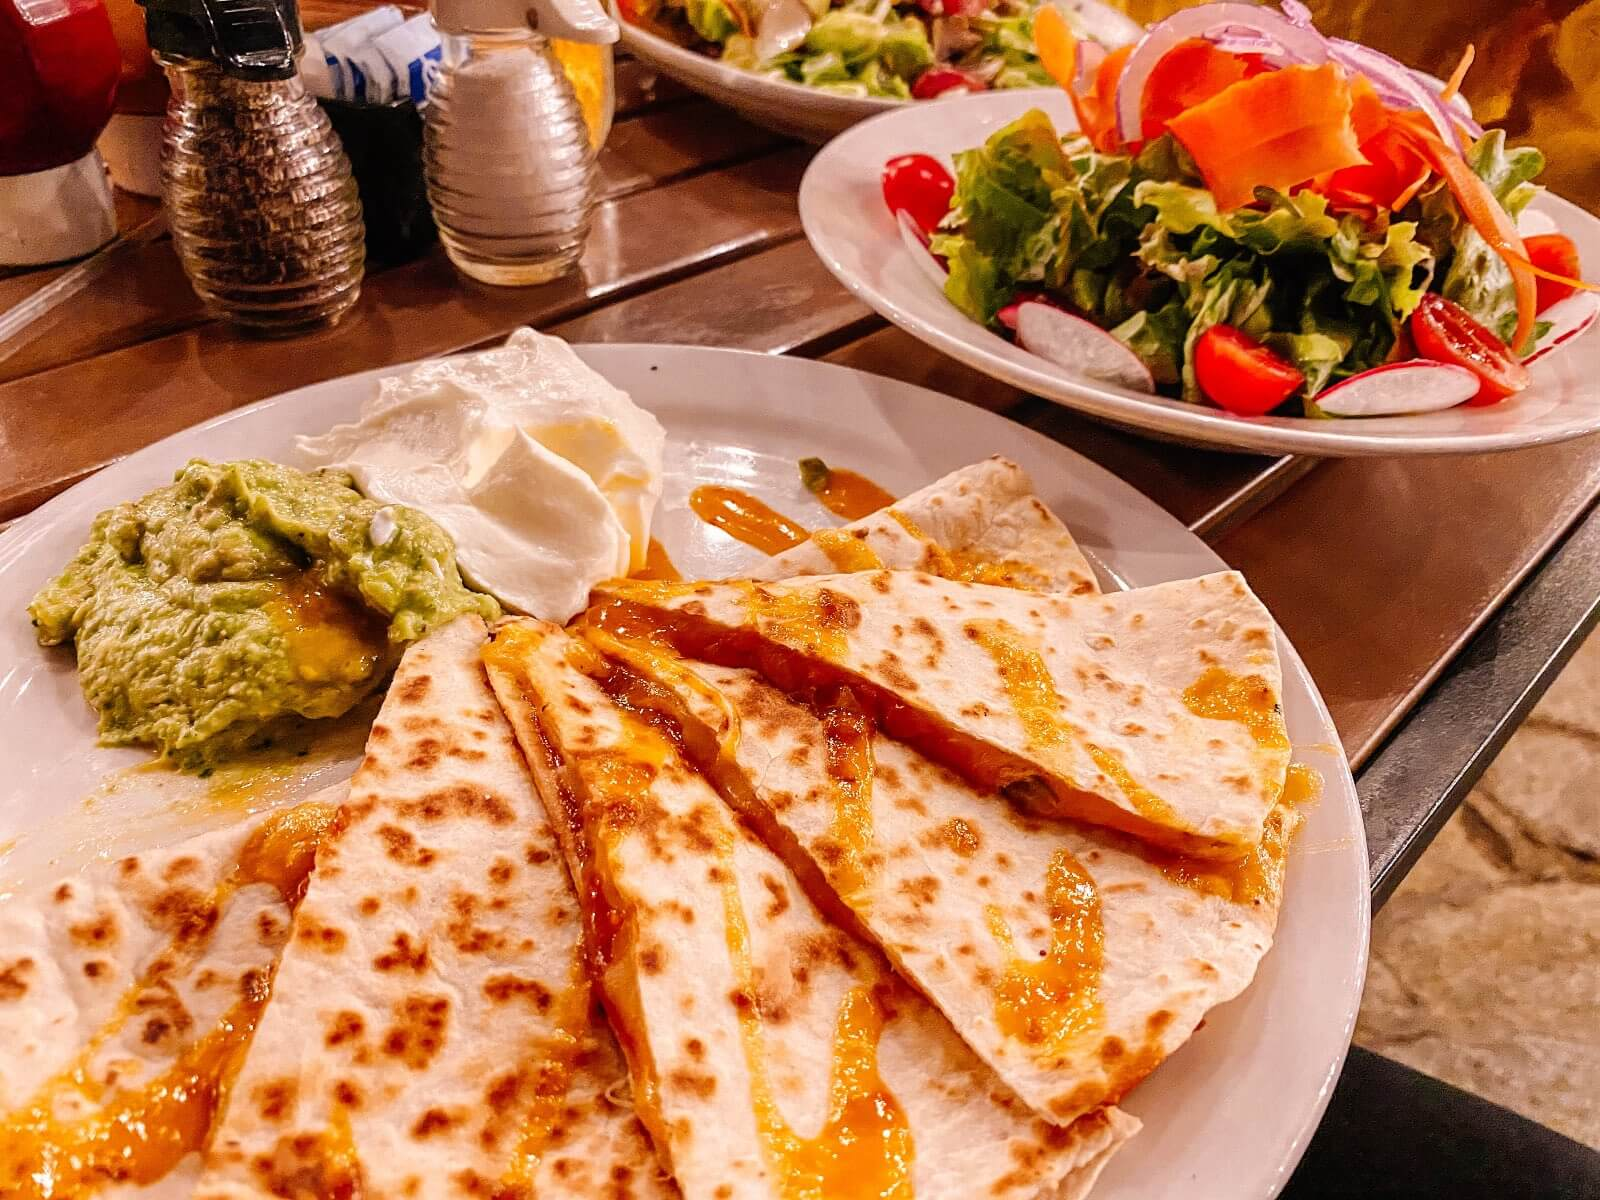 Chicken quesadilla and salad at Hana Ranch restaurant in Hana HI